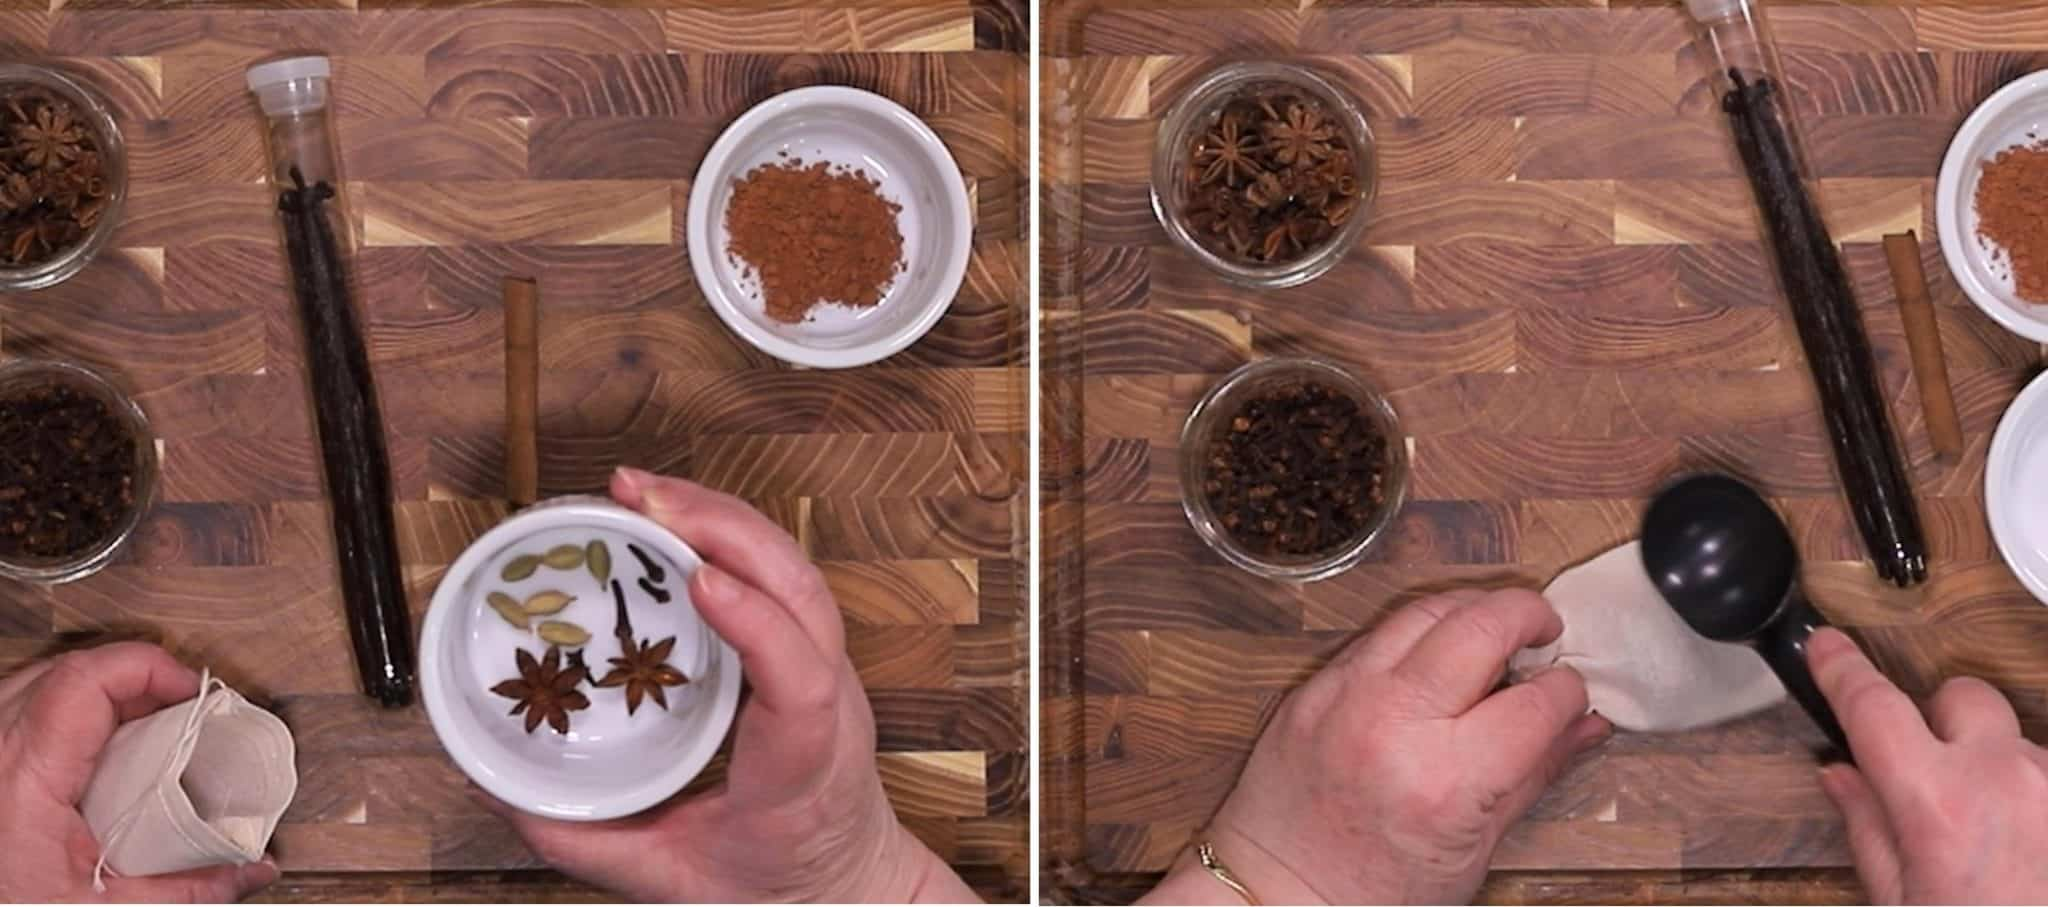 Add Spices to Small Spice Pouch & Crush